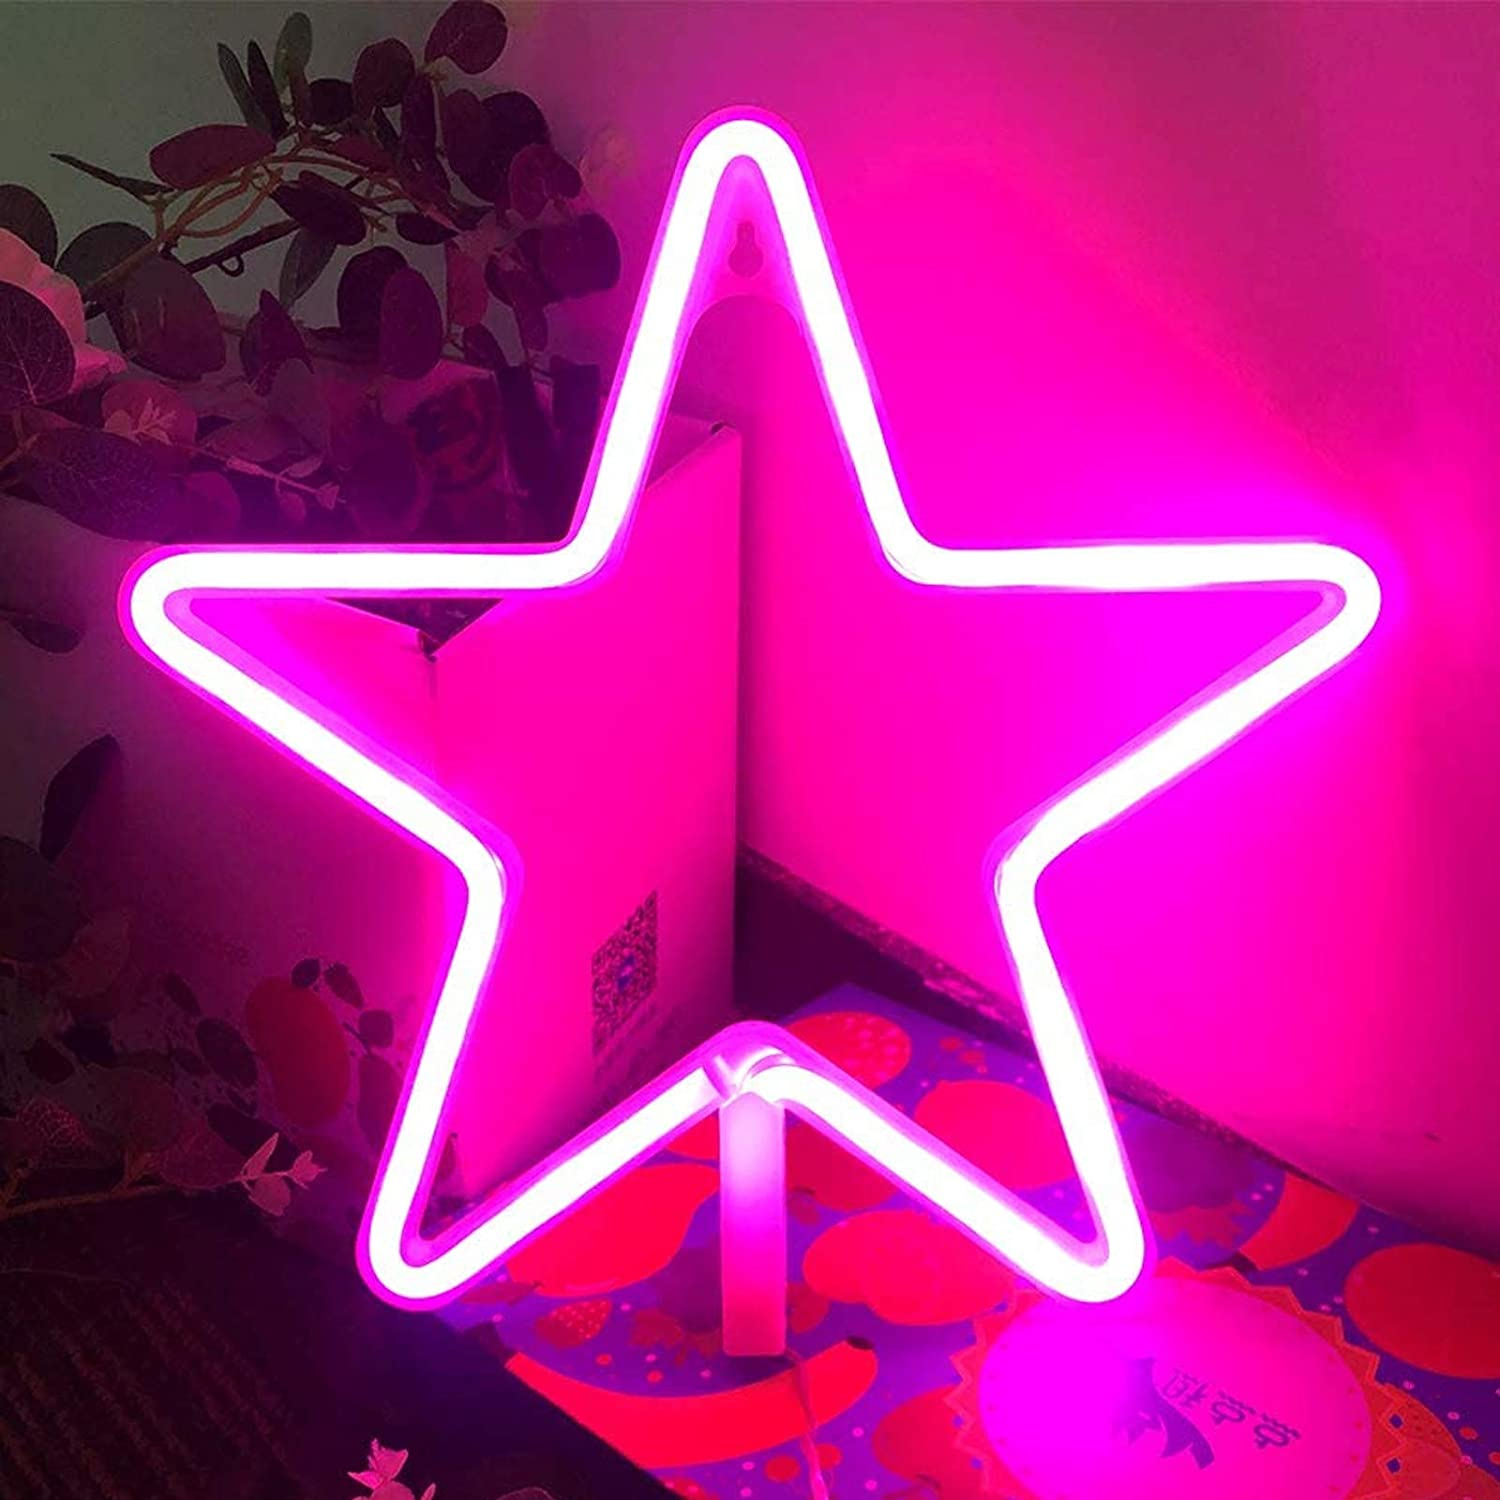 LED Neon Signs for Wall Decor,USB or Battery Decor Light,Neon Light for Bedroom,LED Neon Decorative Lights for Christmas,Party,Girls Living Room (Star - Pink)